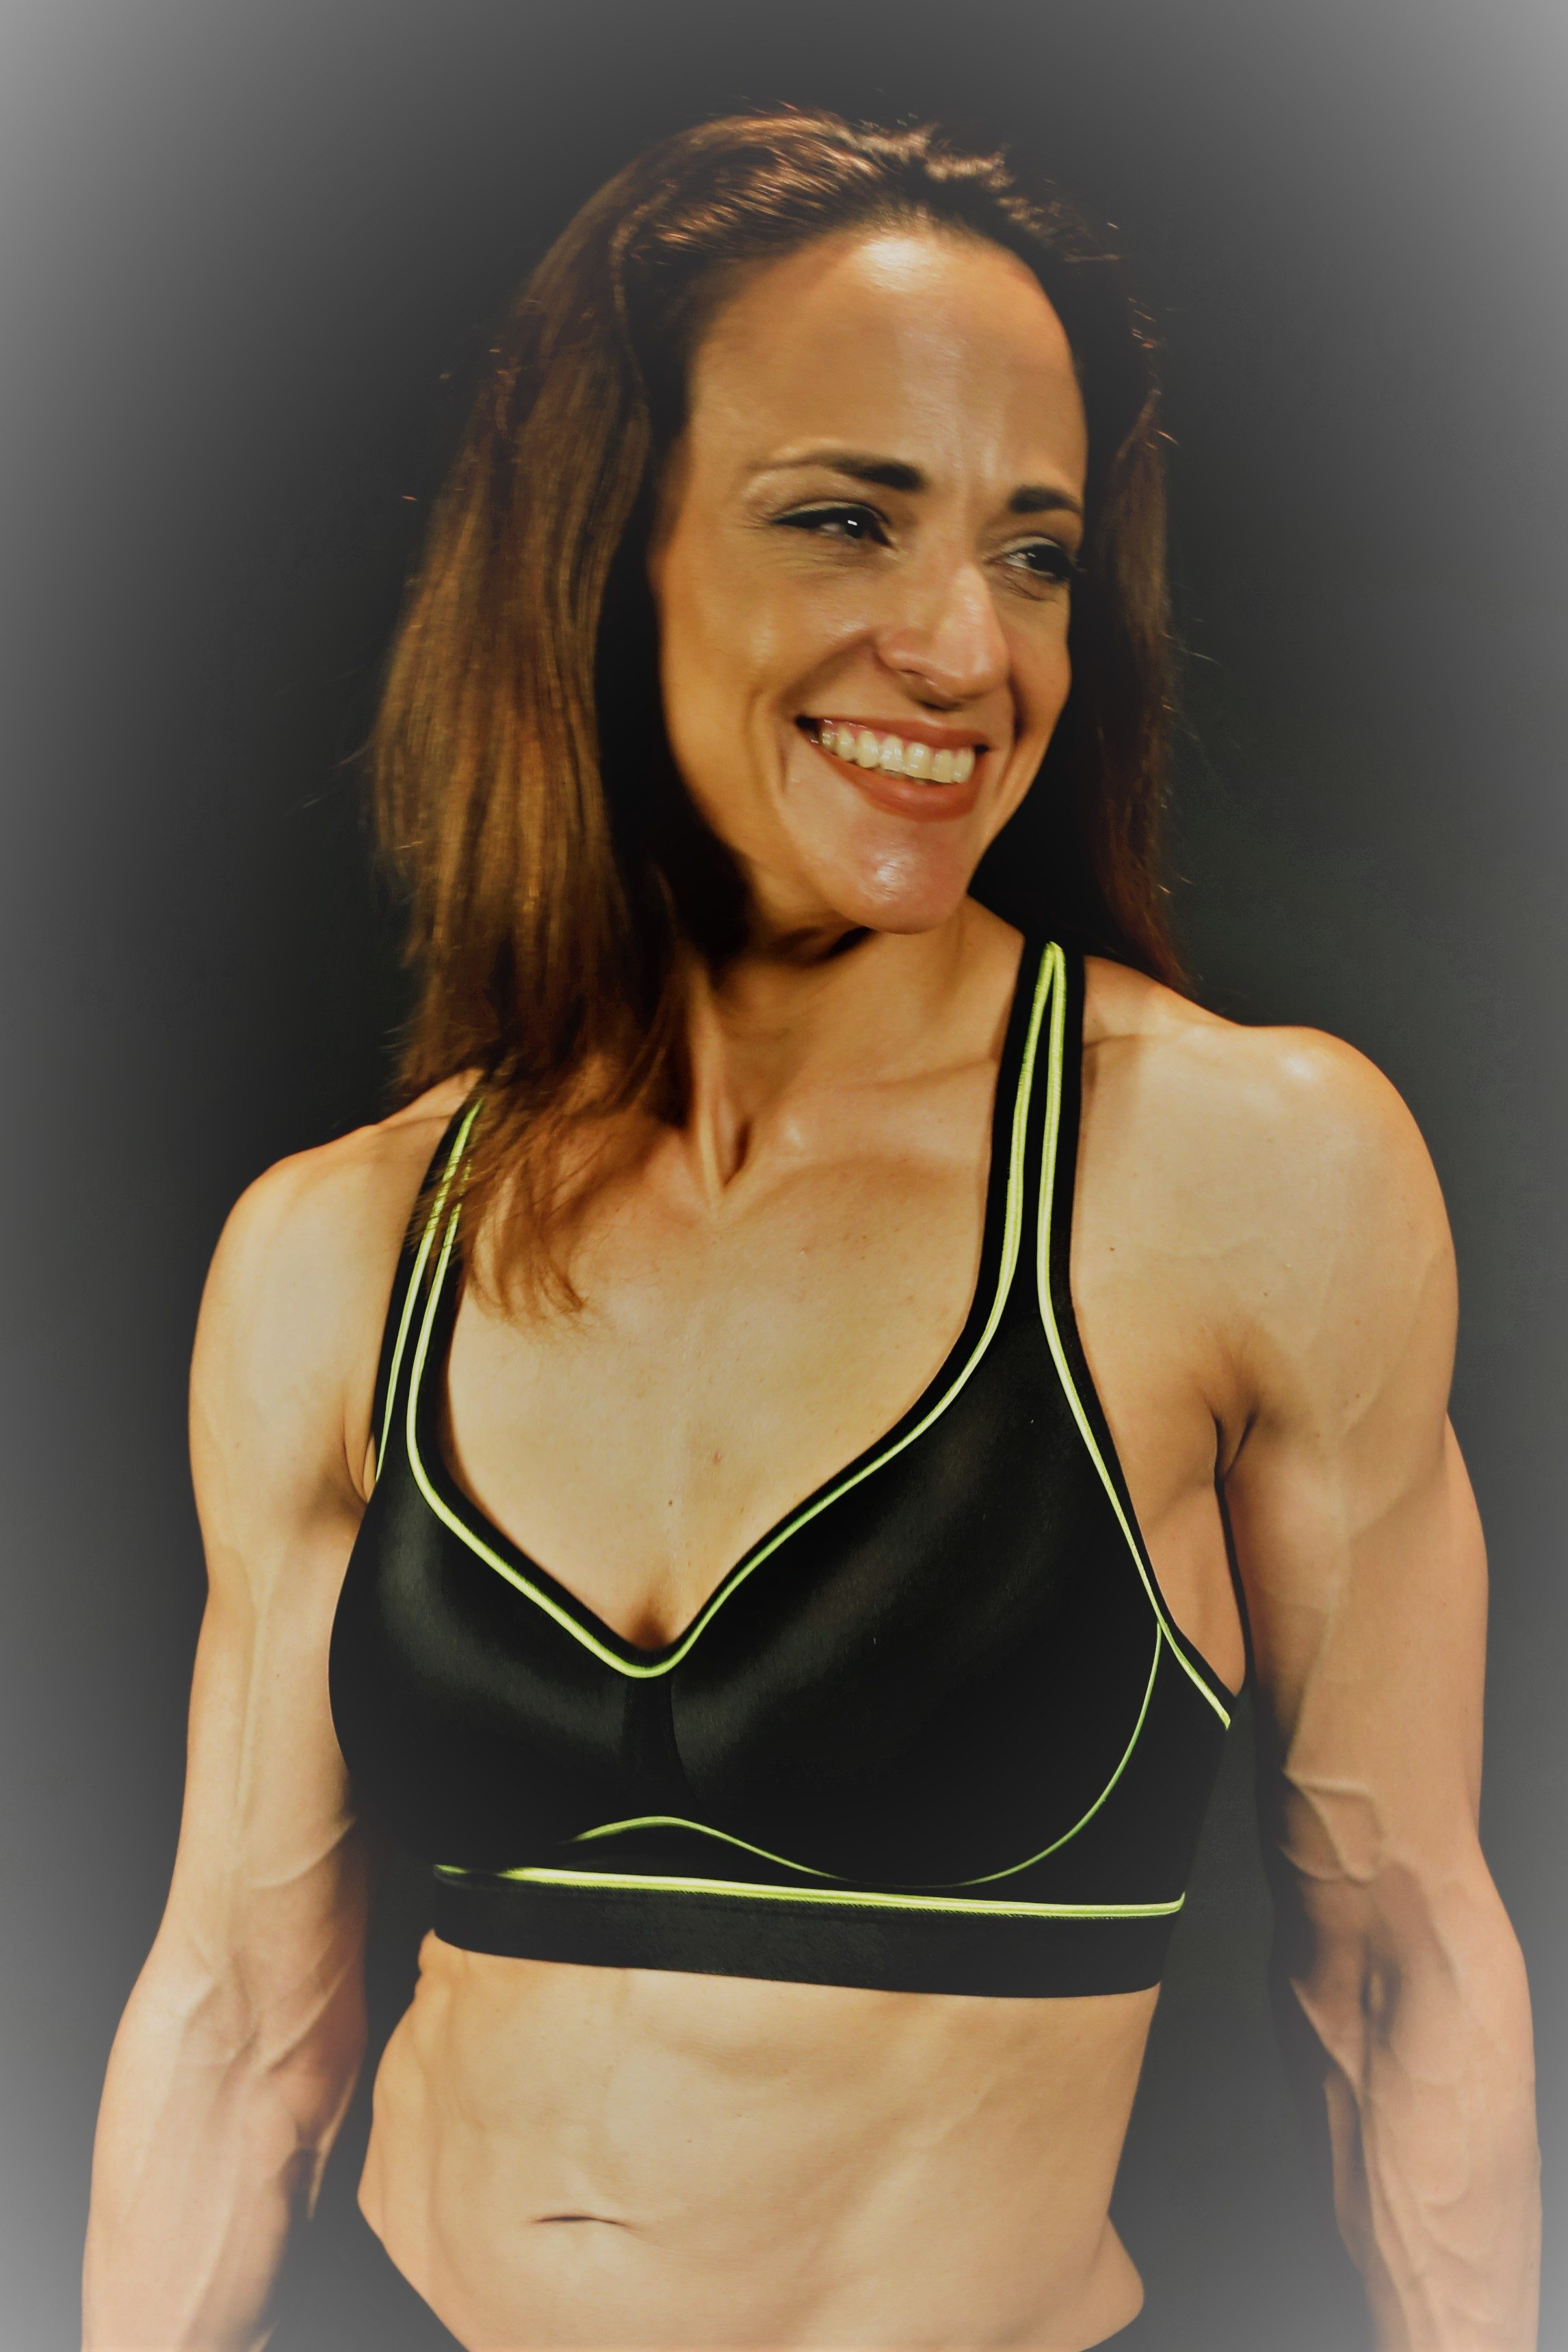 Celina Pizarro, Pro Coach and owner of CP FITPro